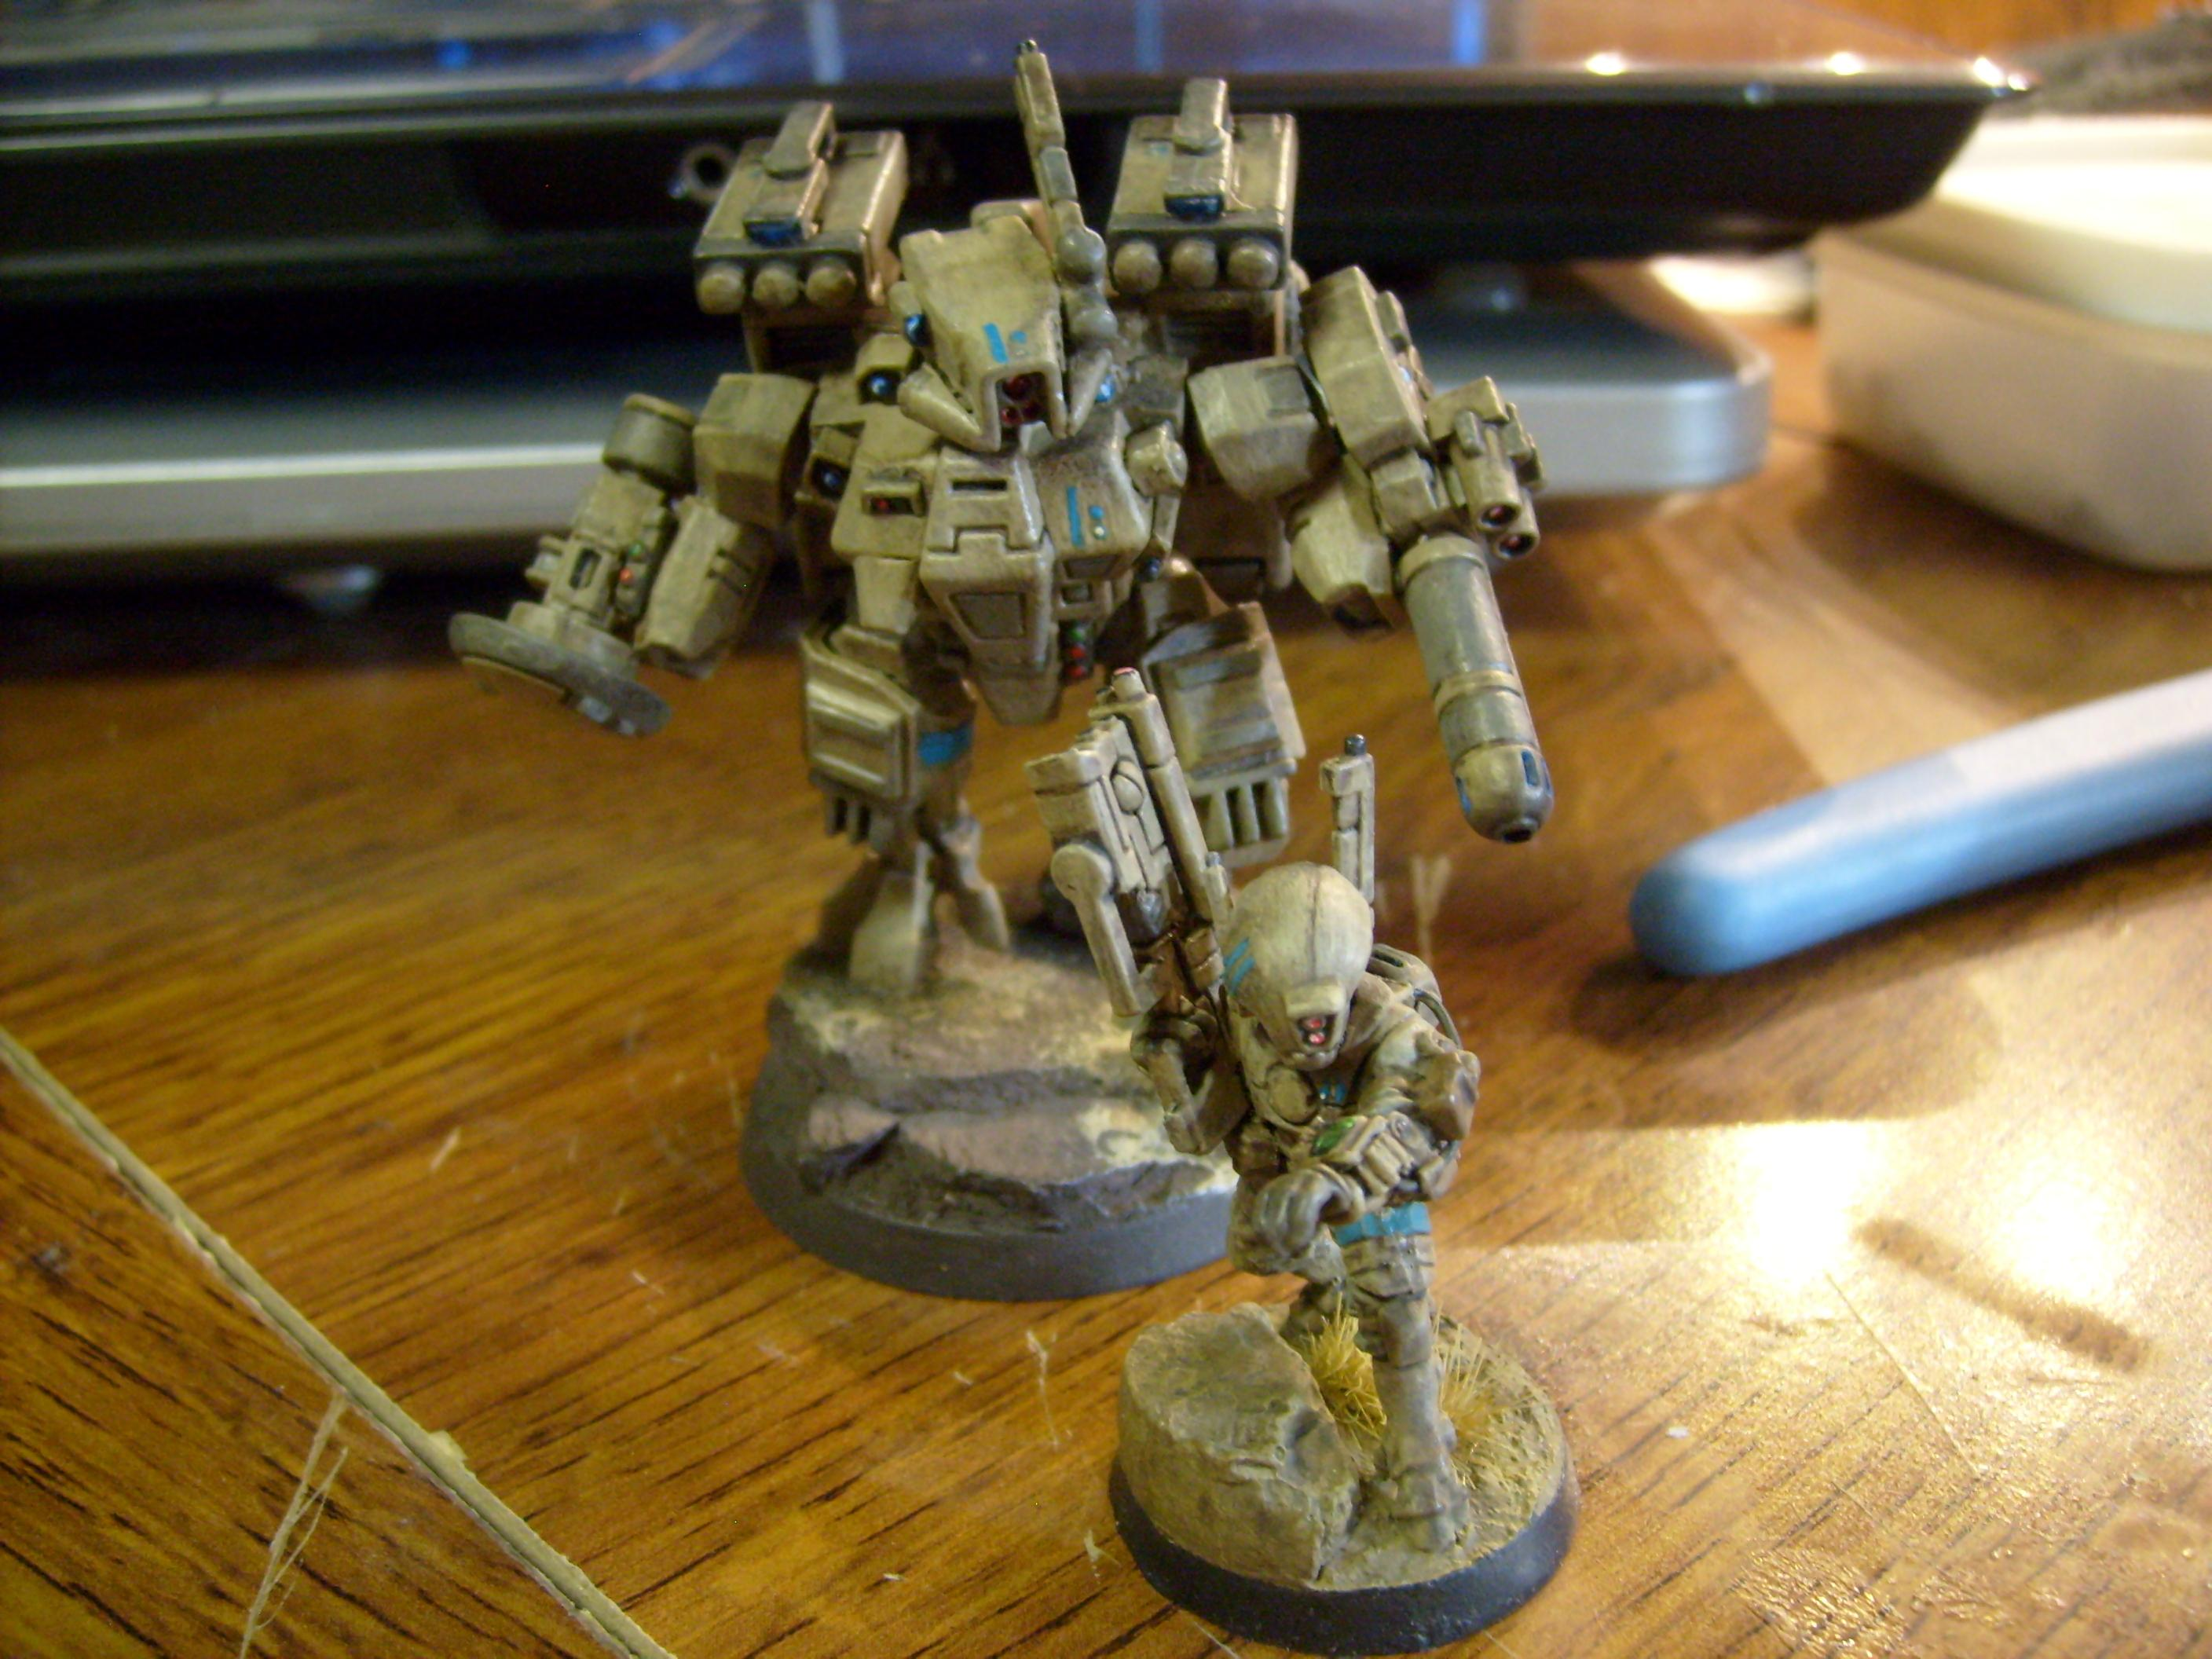 Base, Crisis Battlesuit, Desert, Mesa, Pathfinders, Resin, Secret Weapon, Tau, Warhammer 40,000, Xv-8